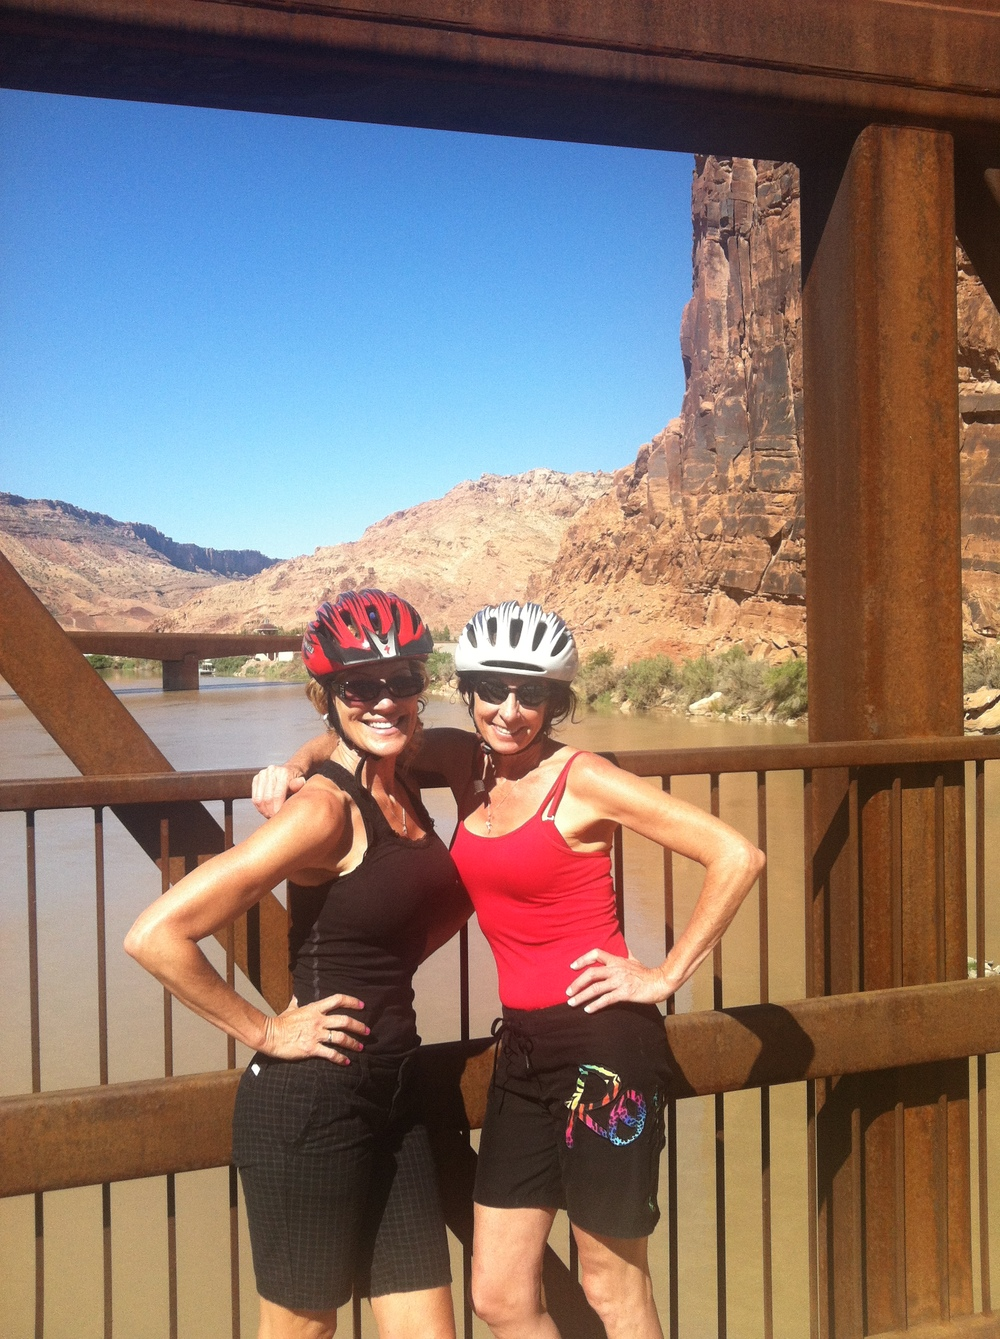 Jami Hanna and Vicki Whaley, both 53, mountain biking in Moab, UT.